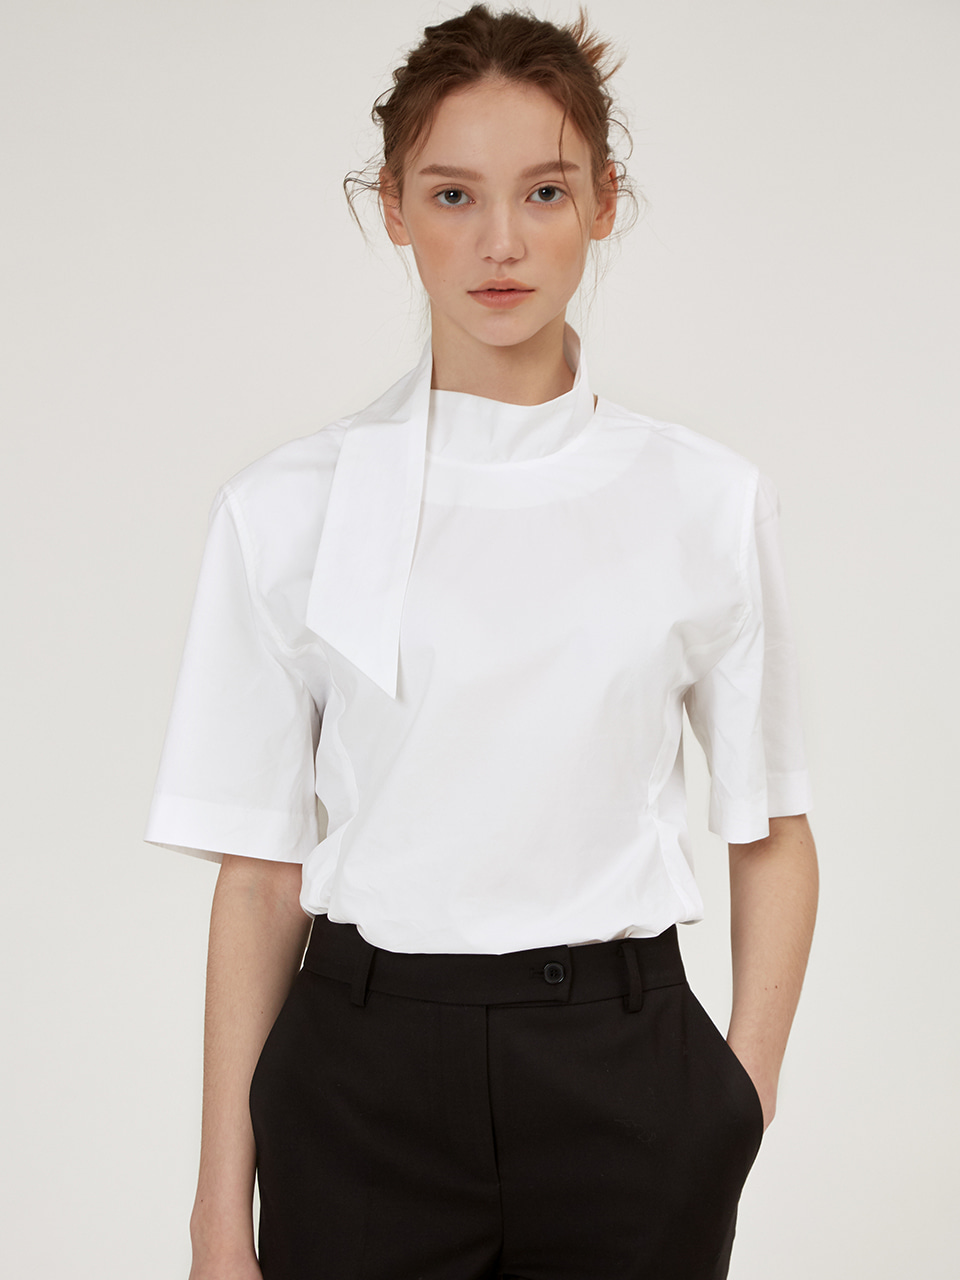 NECK STRAP DETAIL BLOUSE [Black][Ivory]